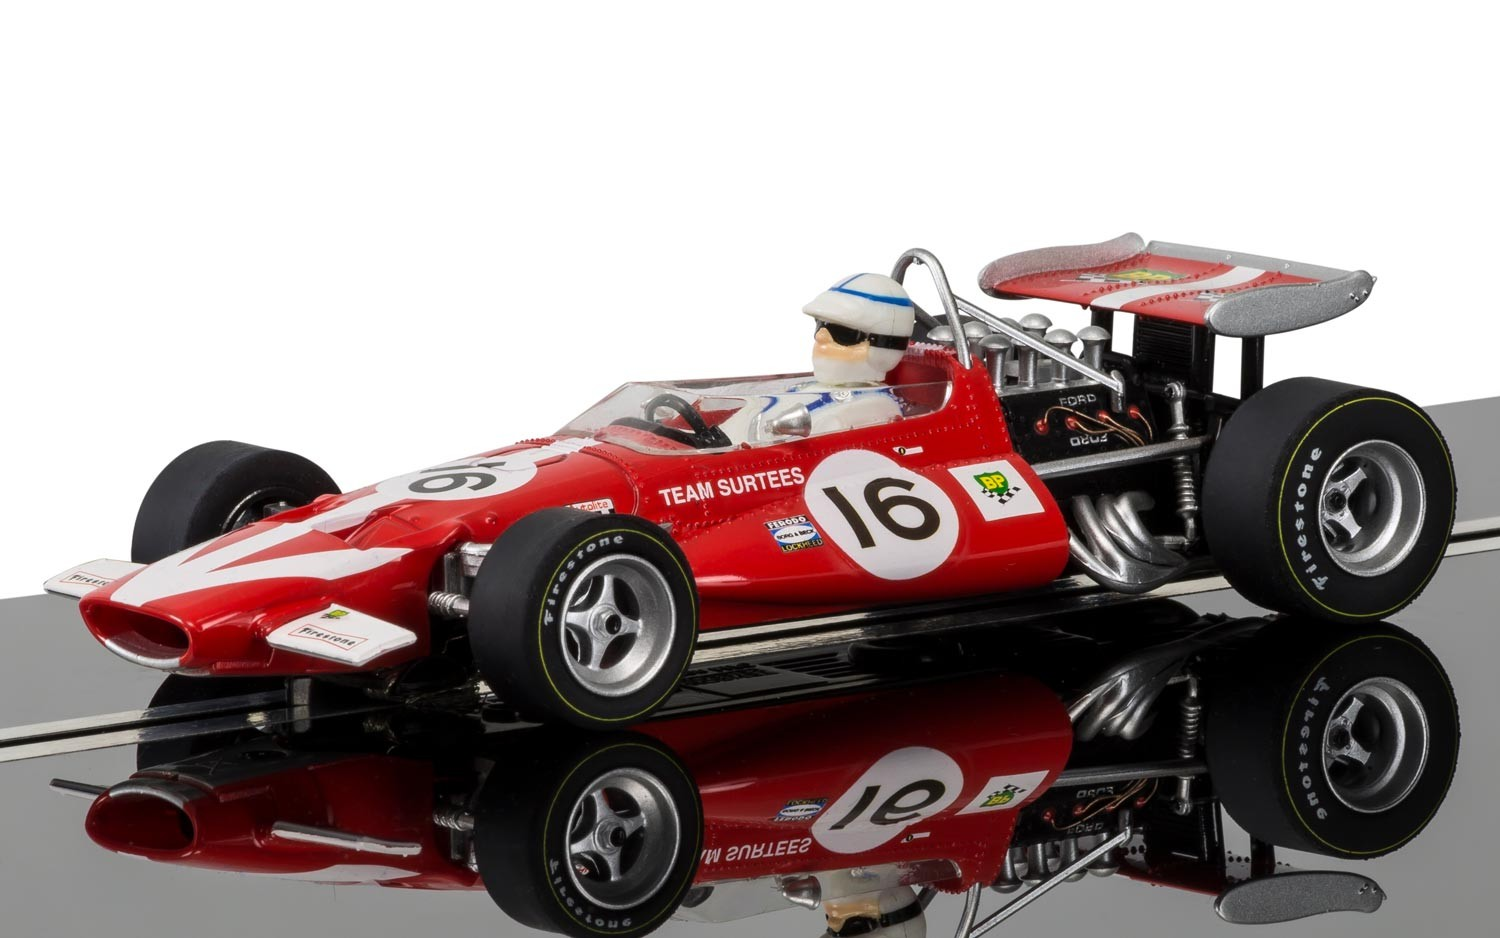 Legends McLaren M7C John Surtees, 1970 Dutch GP - Limited Editio